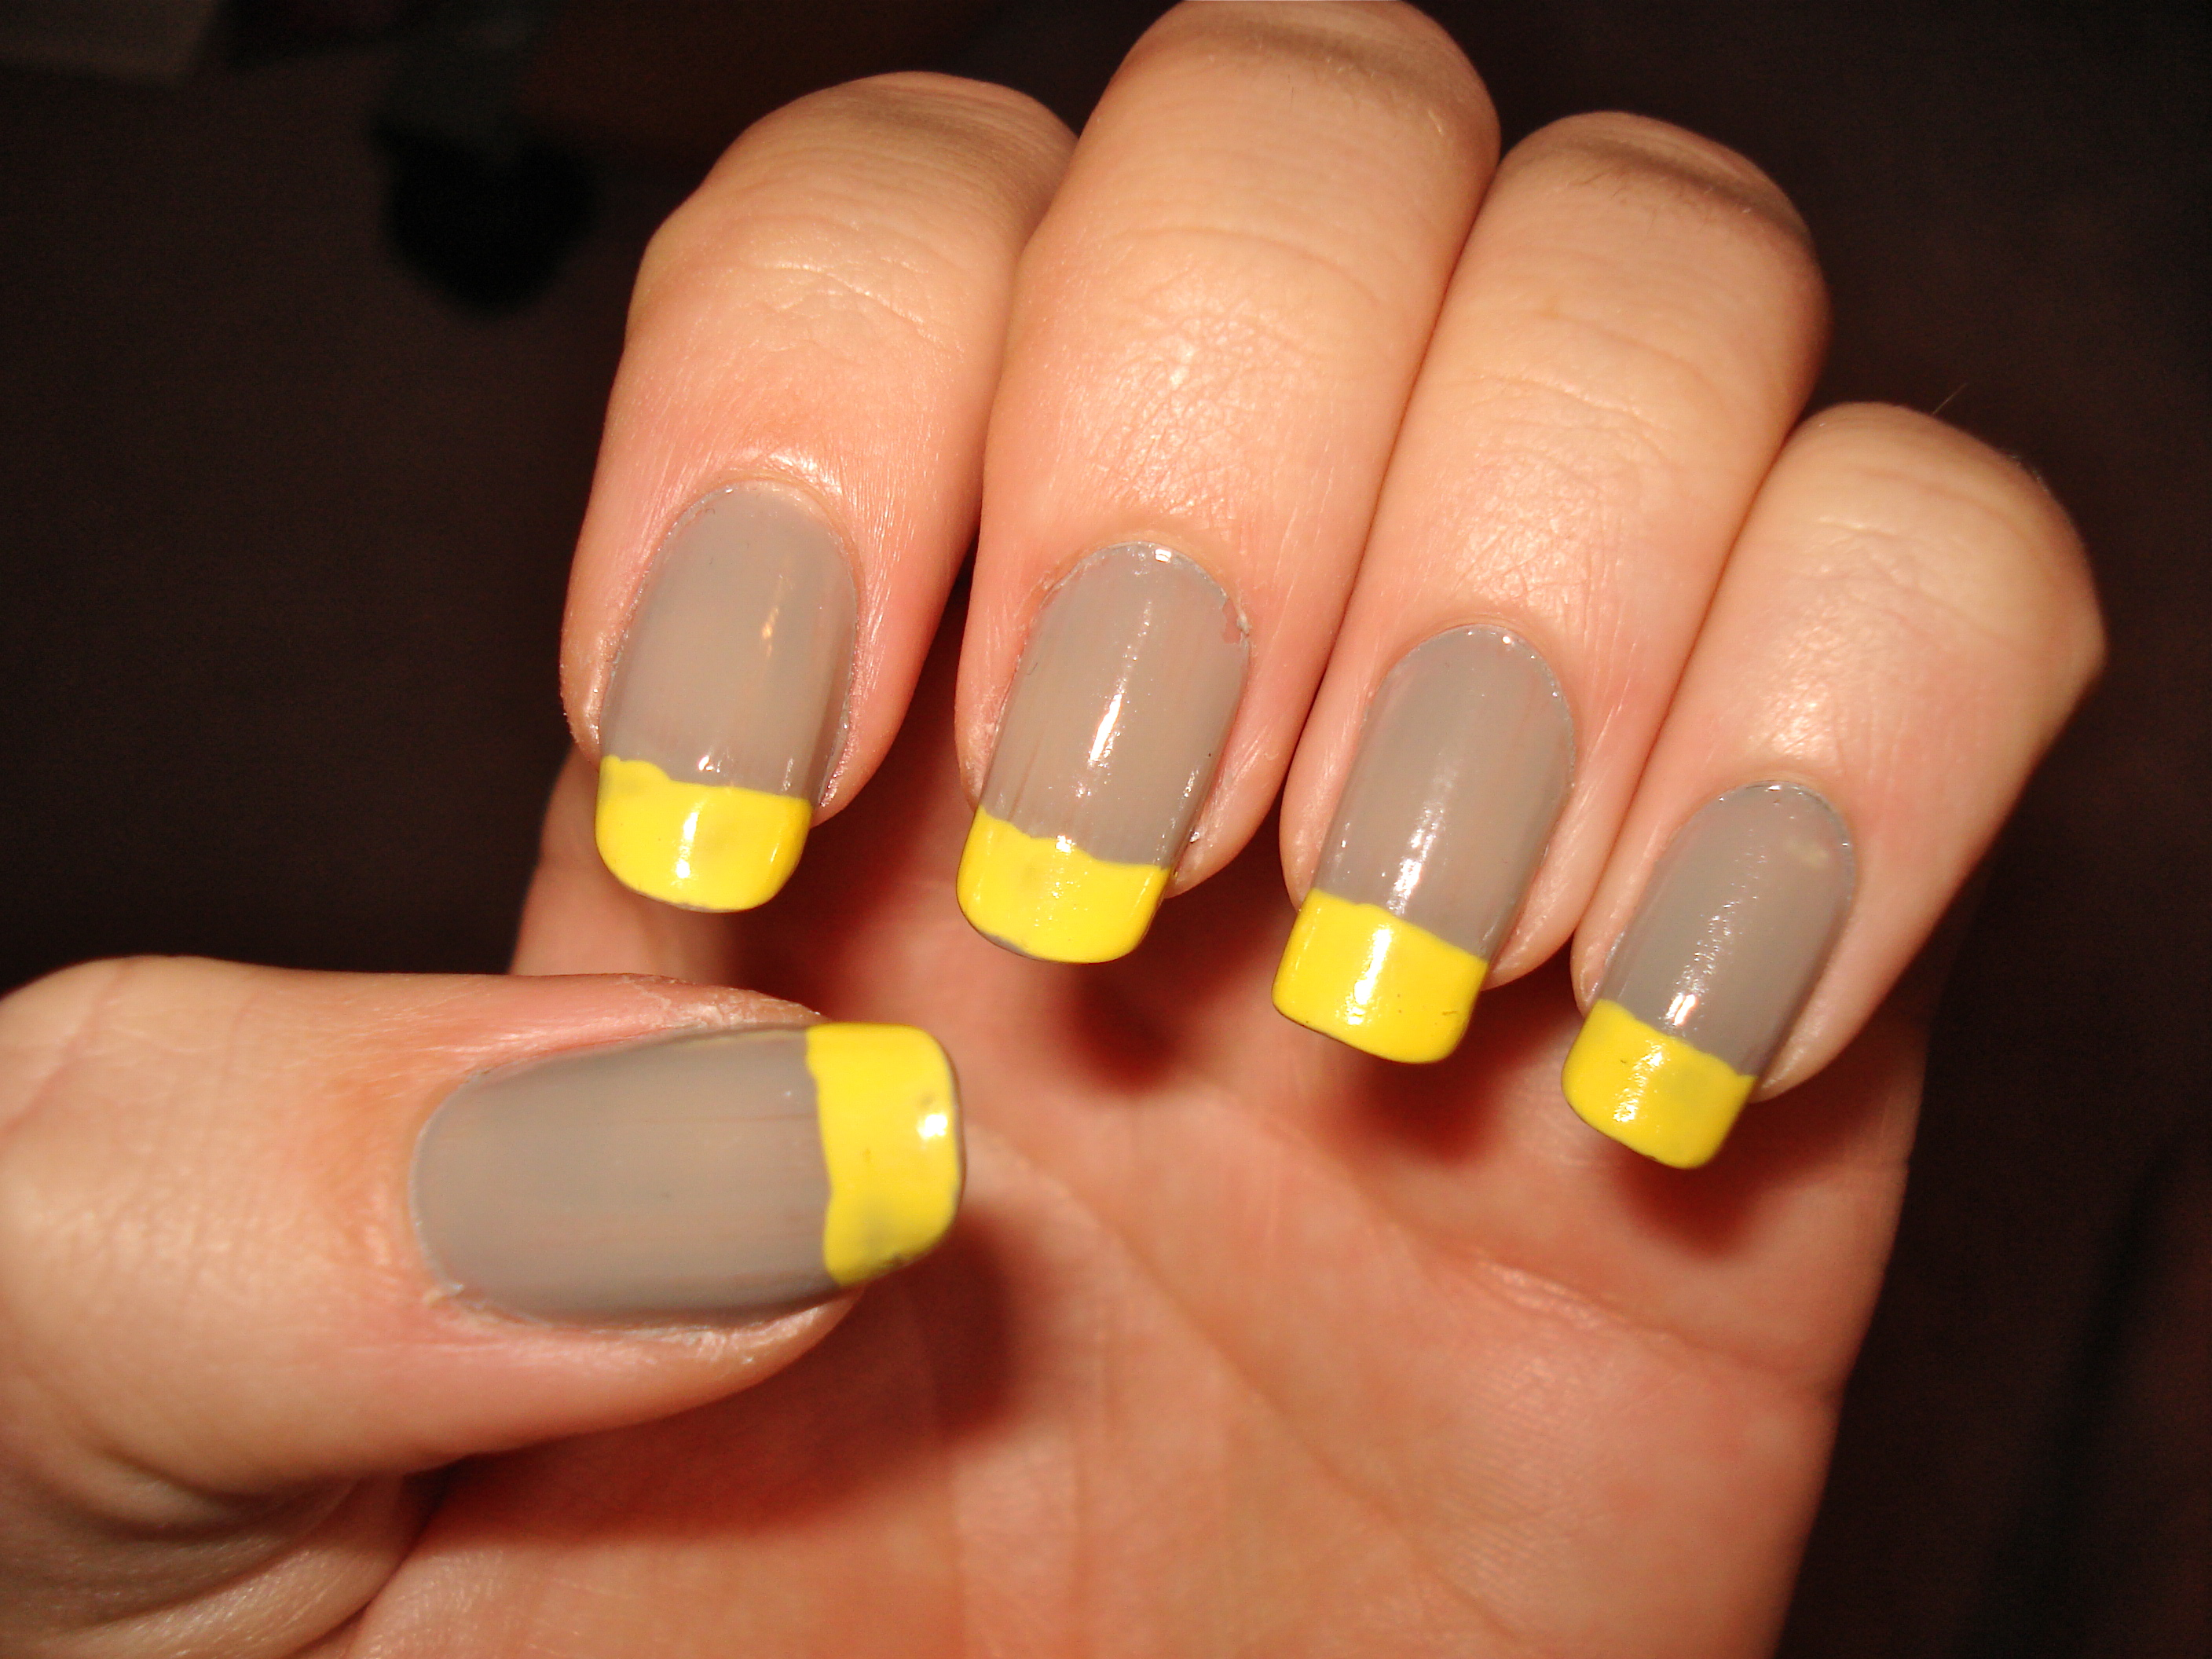 Taupe manicure with bright yellow tips